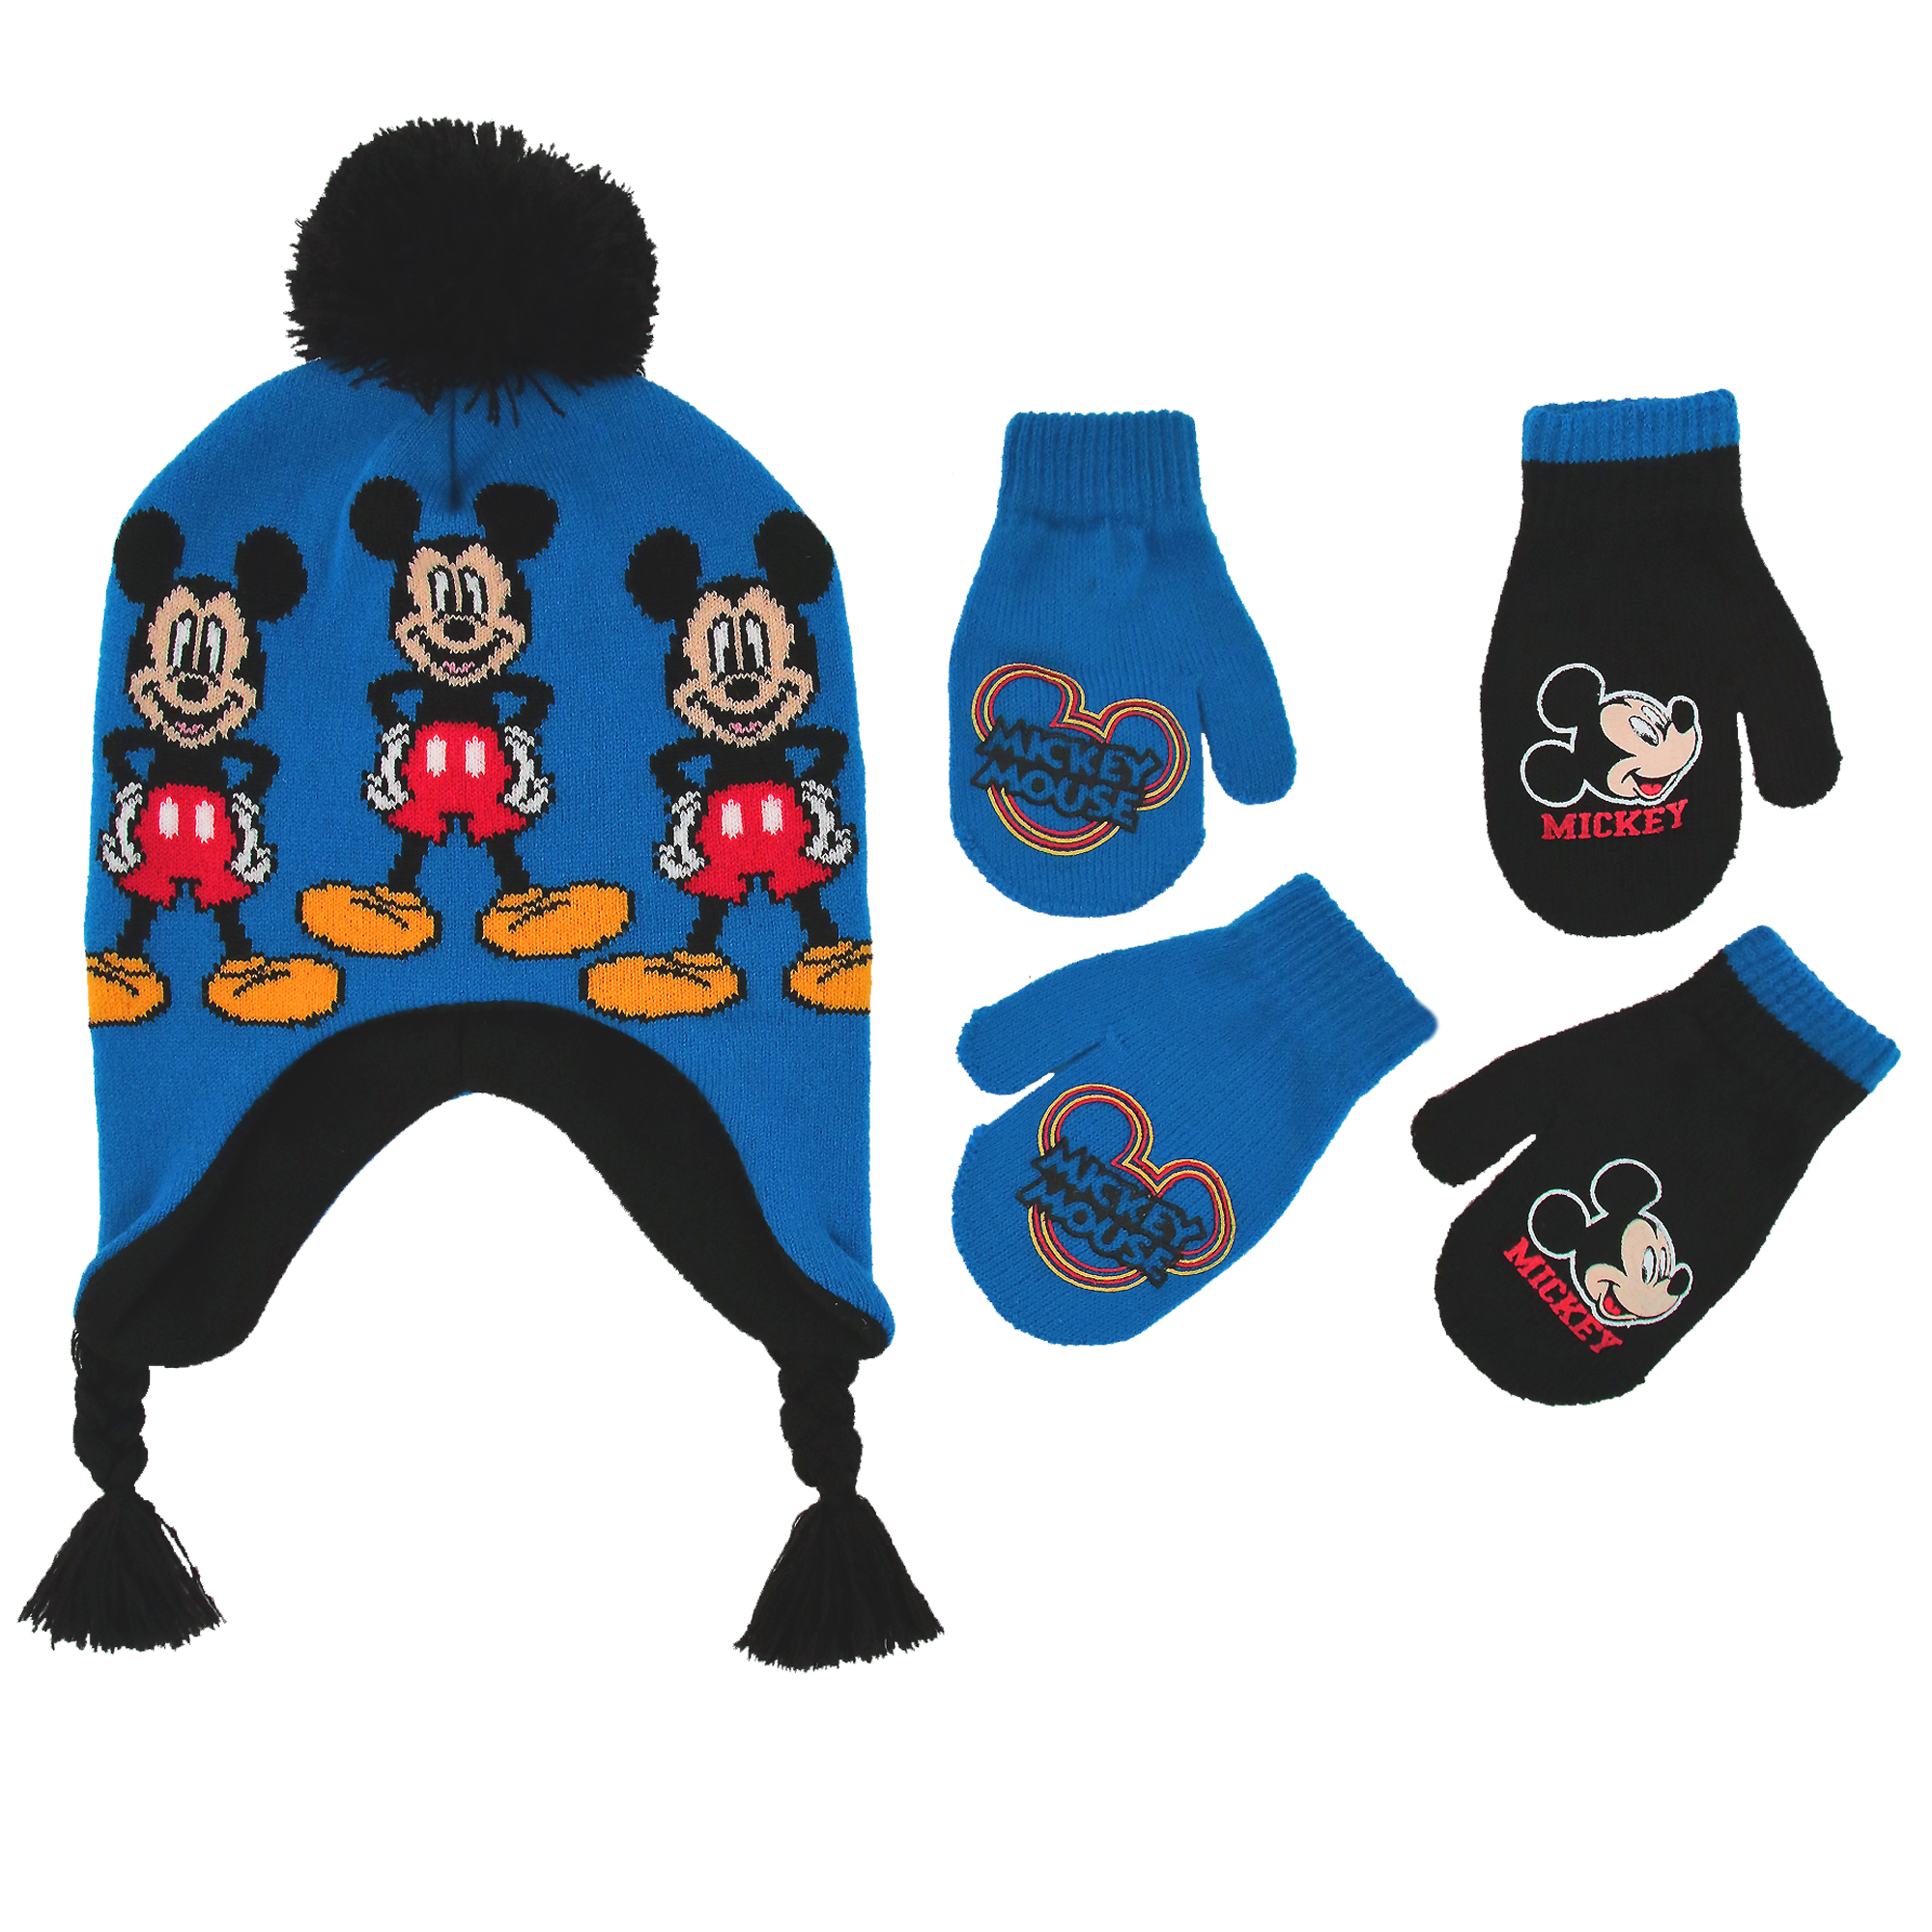 Boys Ages 1-4 Multicolor Disney Mickey Mouse Winter Hat and Glove Set